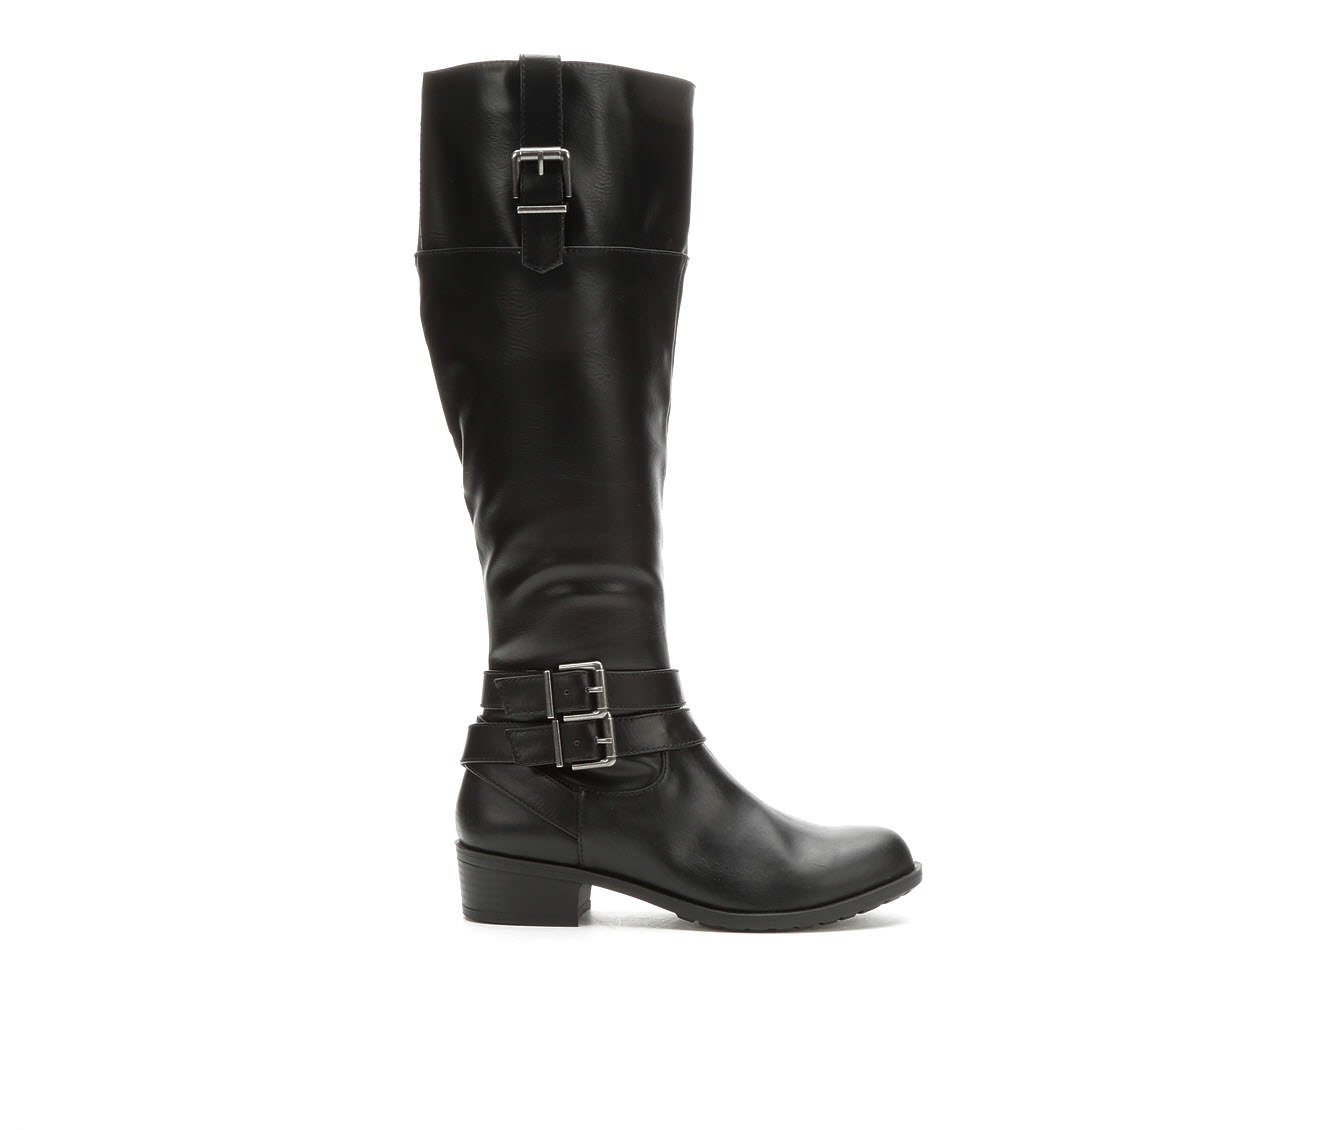 Solanz Grammercy Women's Boot (Black Faux Leather)